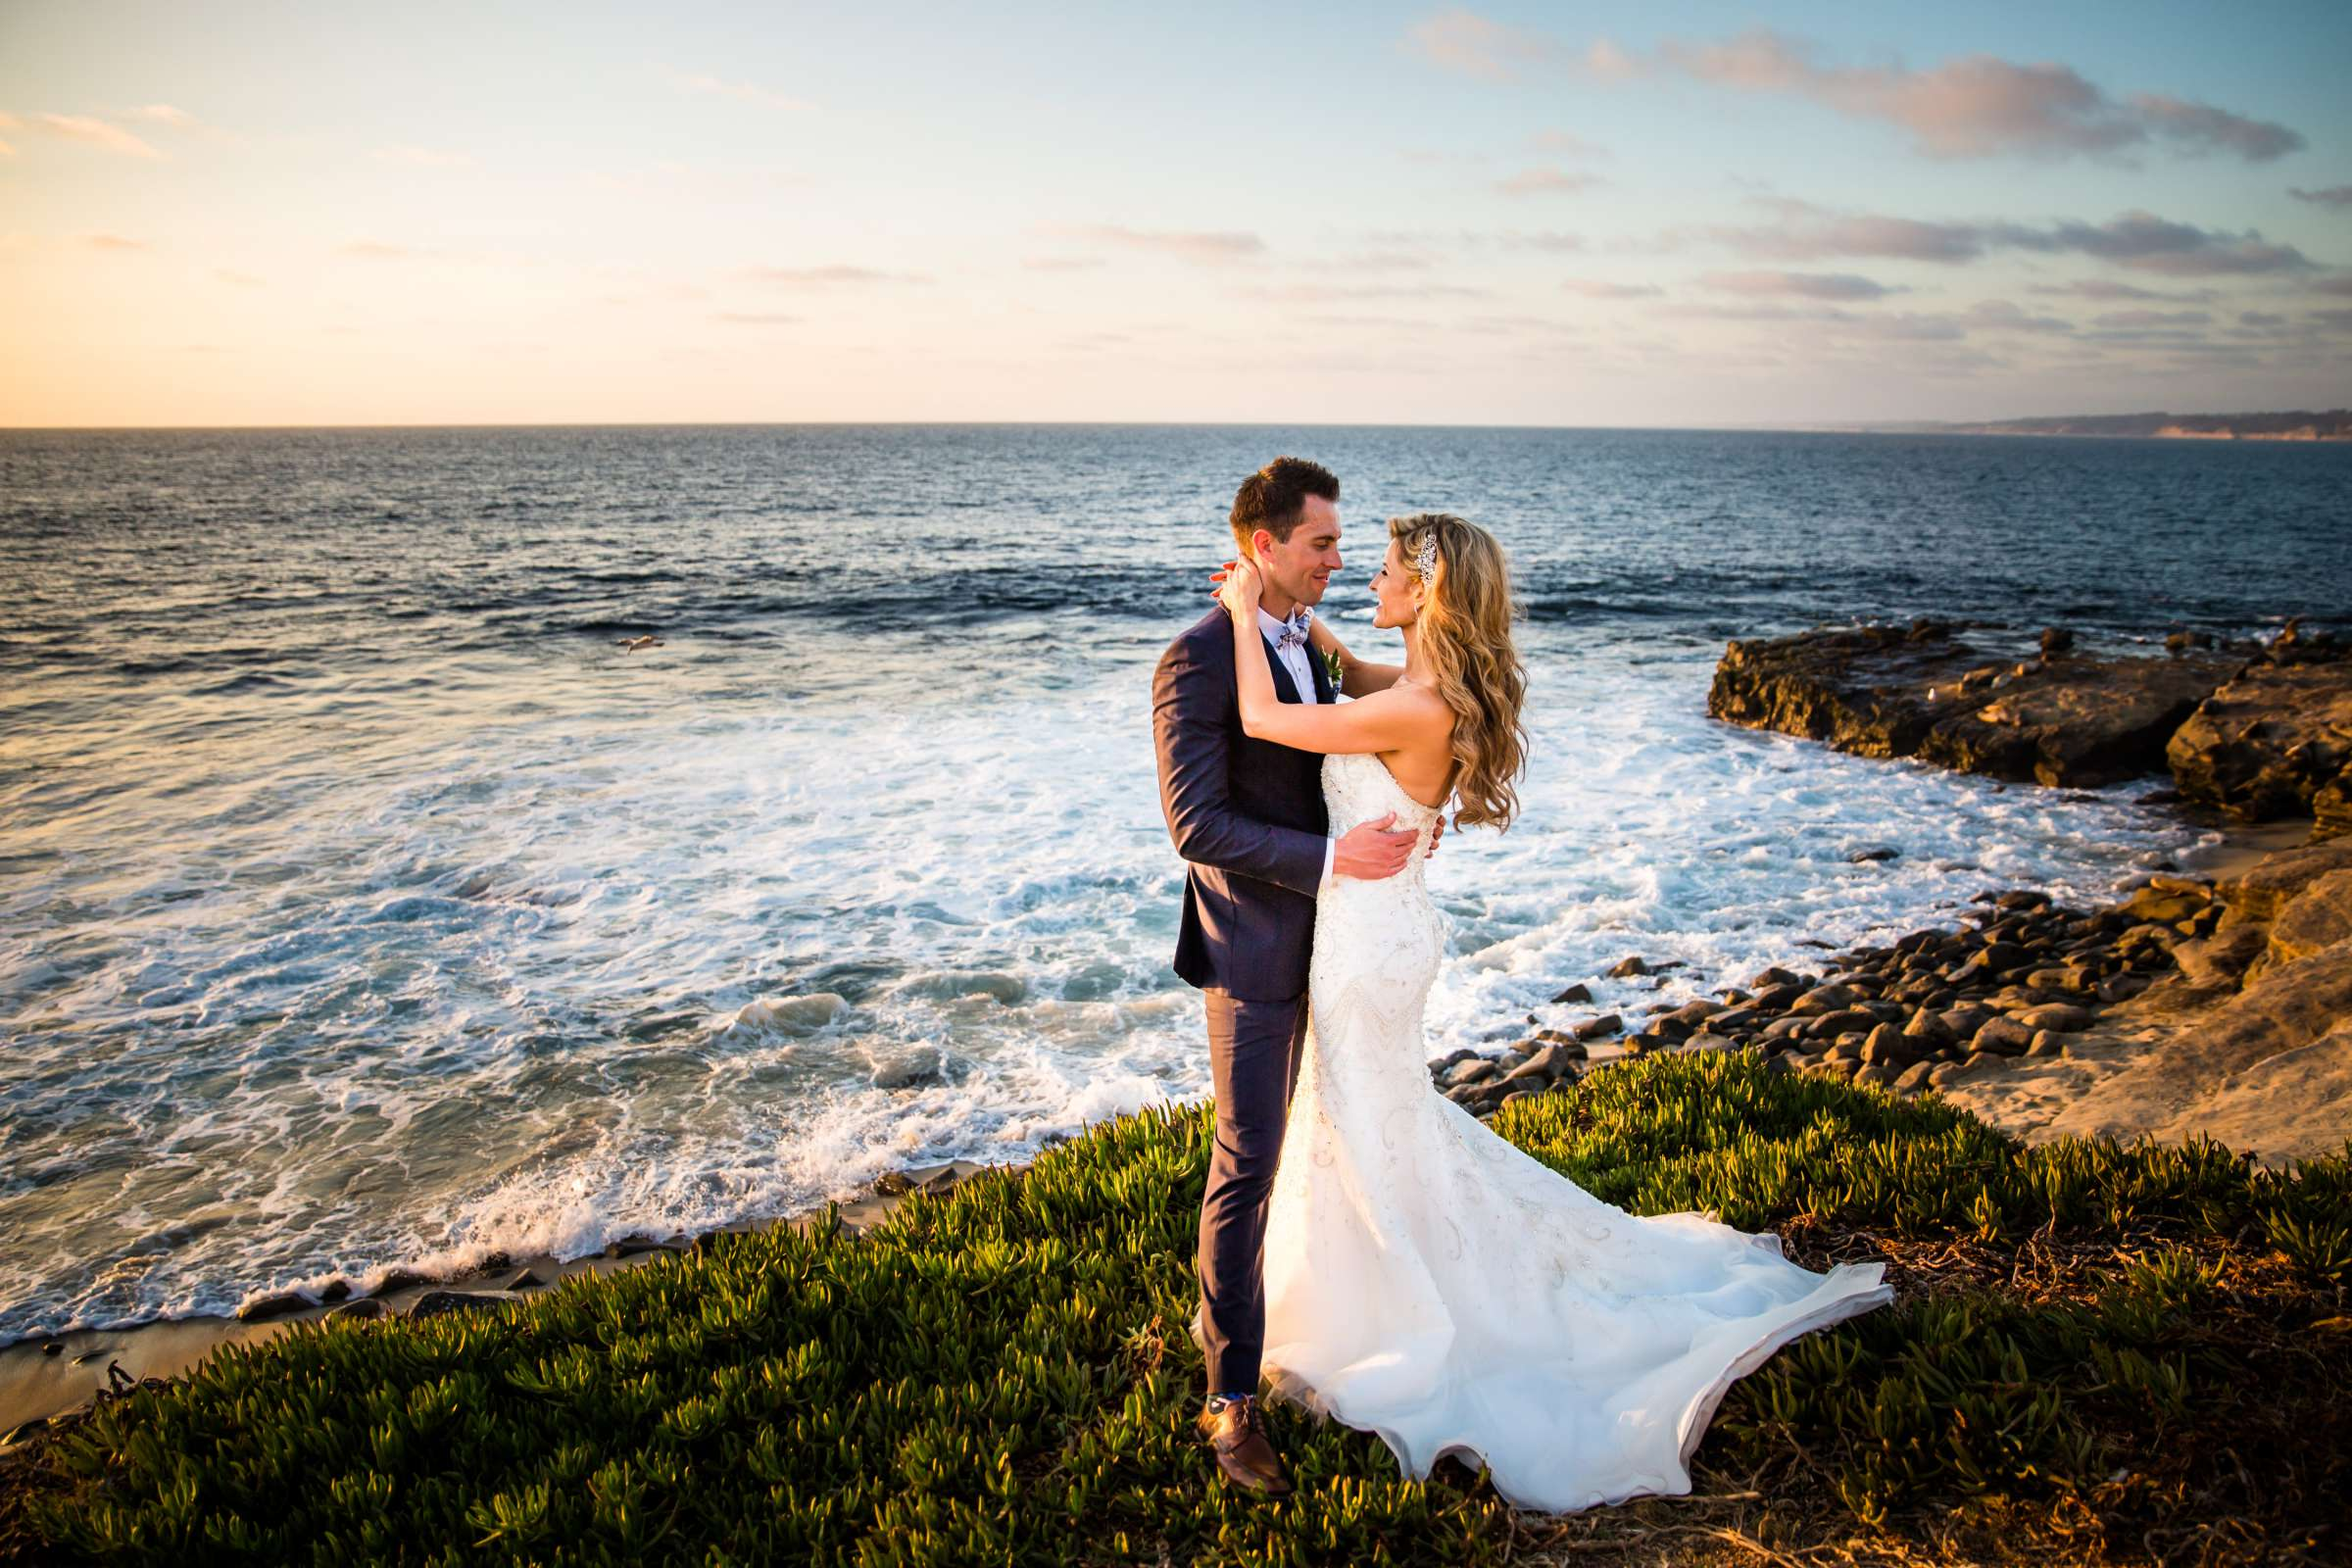 La Valencia Wedding coordinated by SD Weddings by Gina, Cindi and Luke Wedding Photo #1 by True Photography